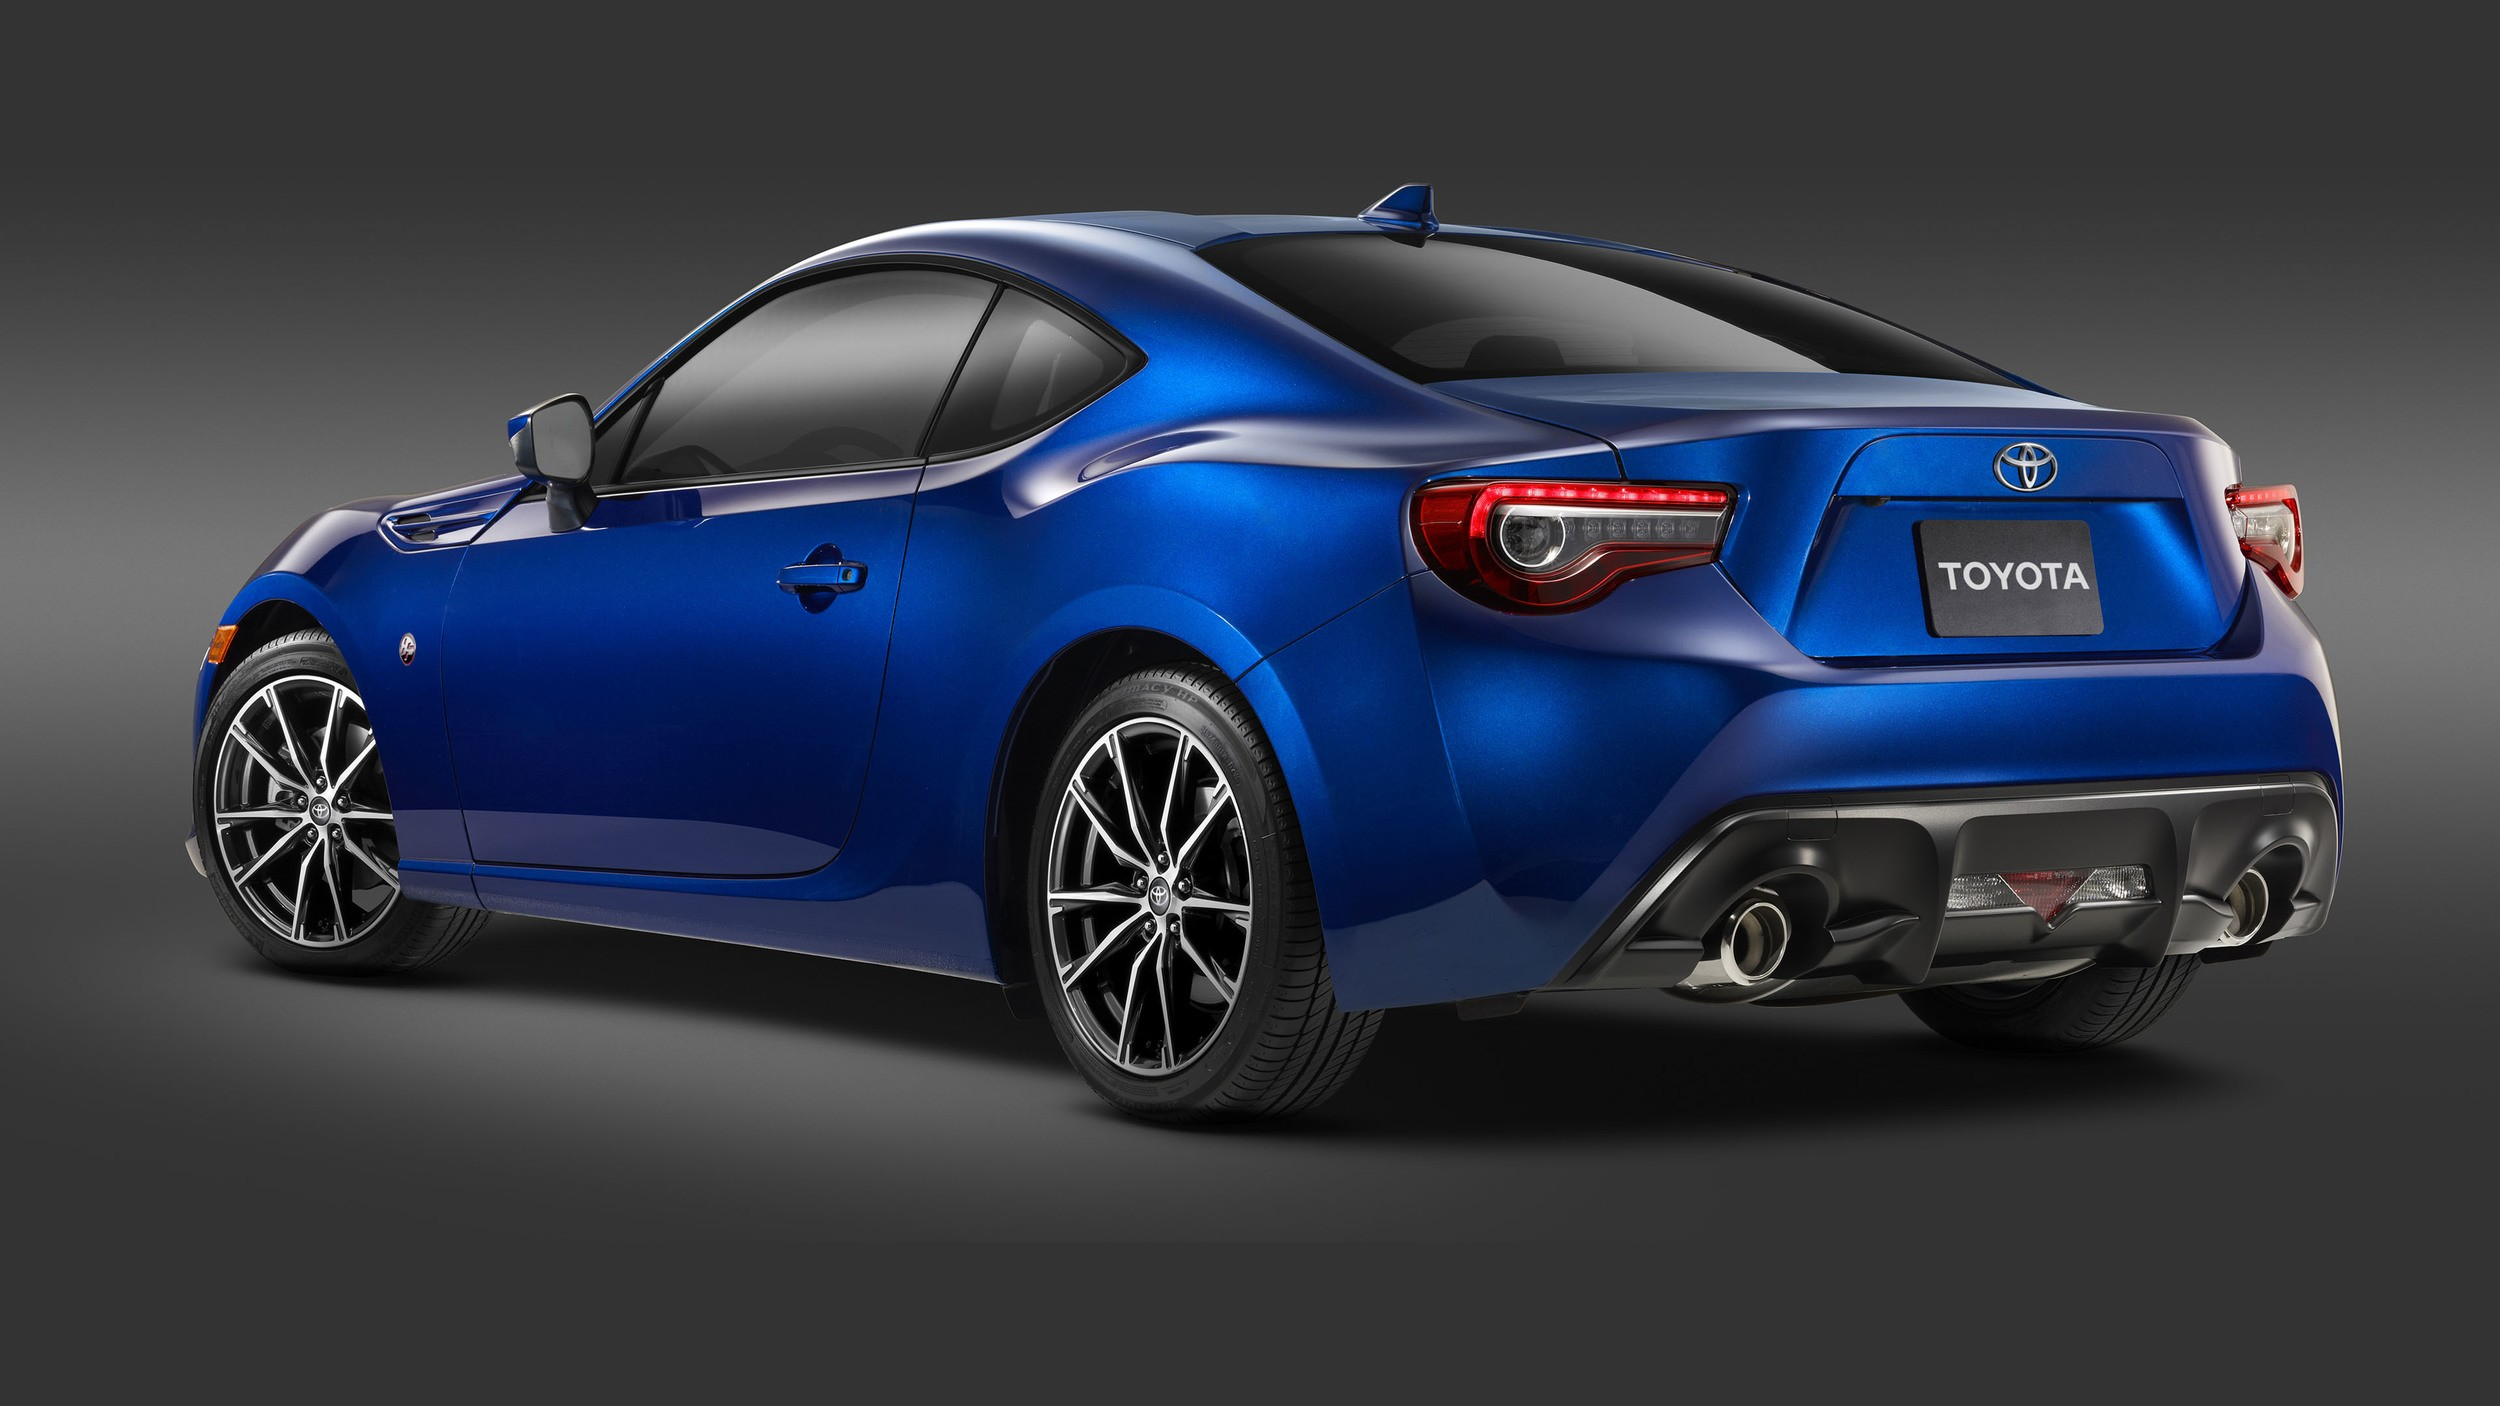 Usa Toyota Recalls Certain 2017 Model Year Gt86 Cars For Key Interlock Issues